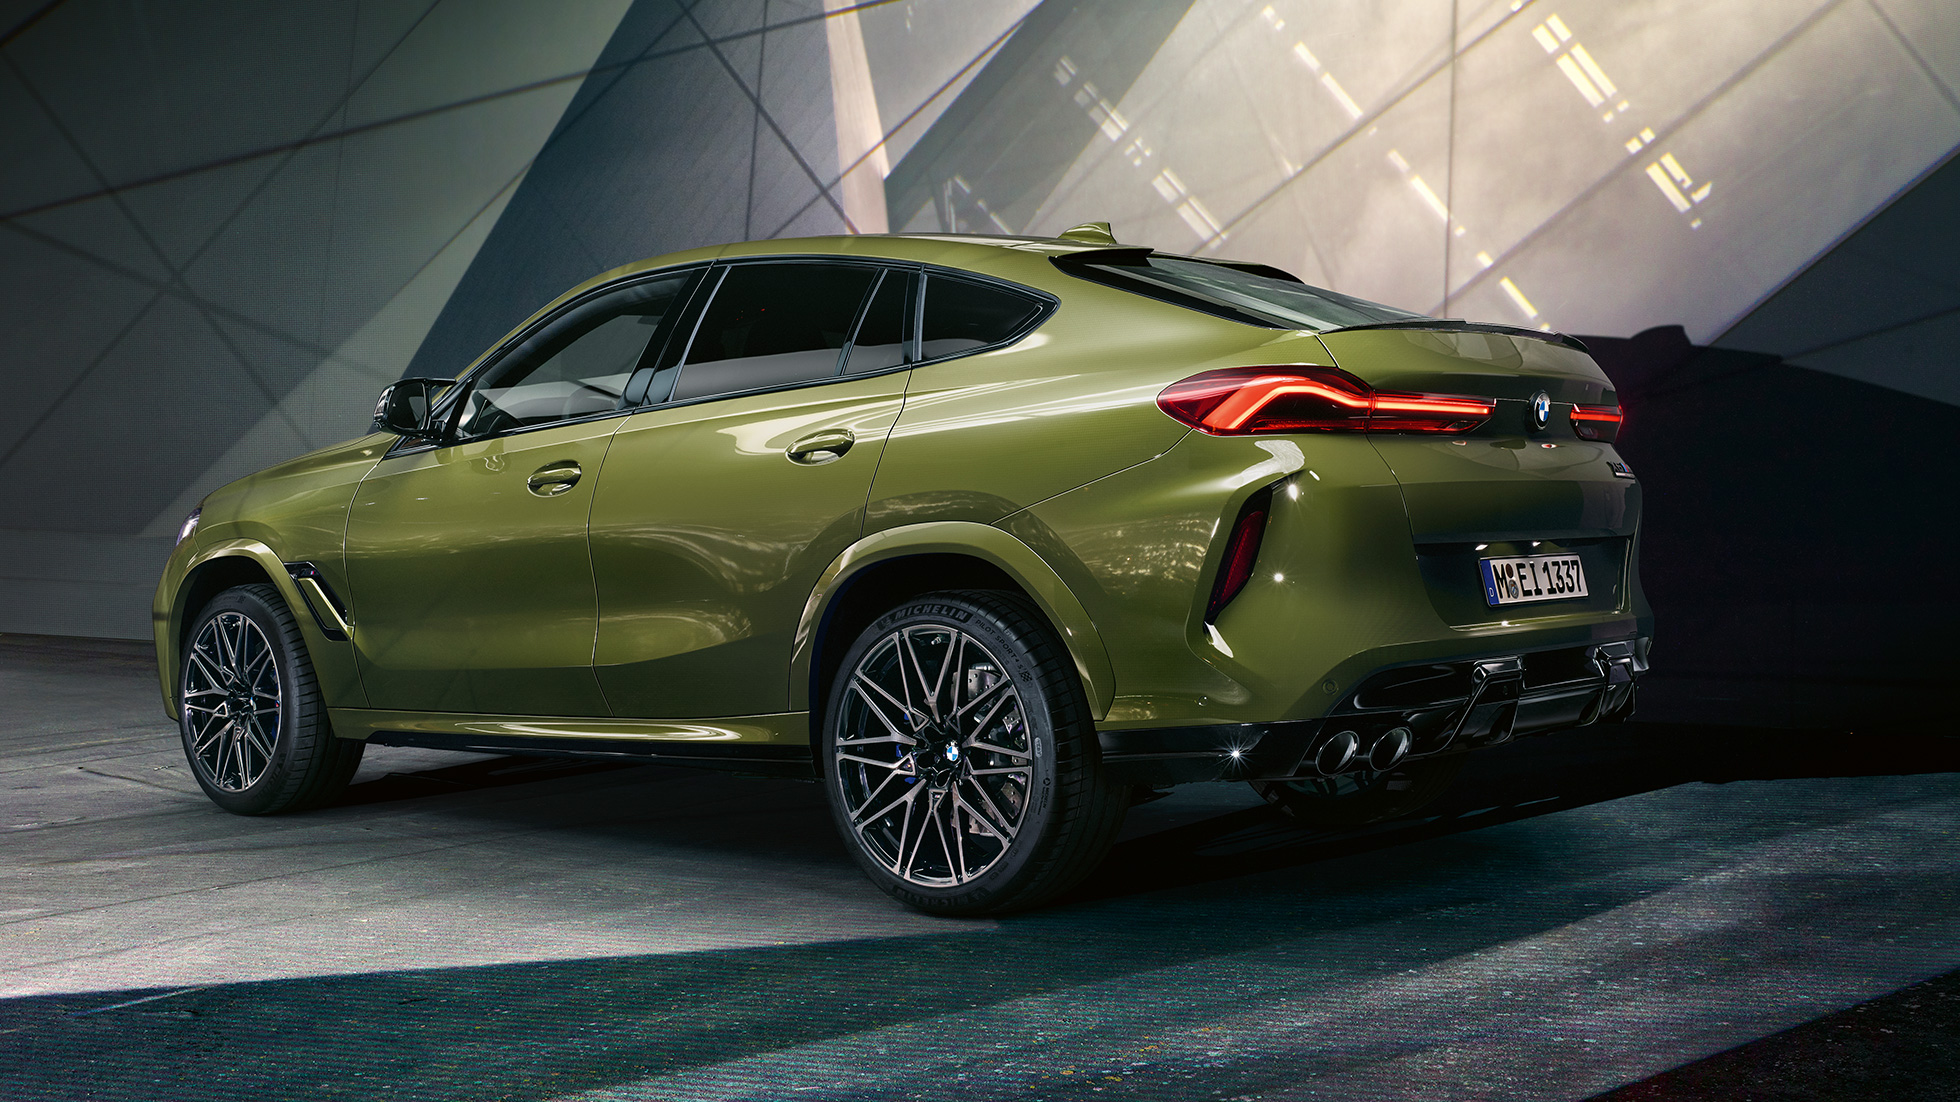 bmw-x6-m-inspire-mg-competition-desktop-02